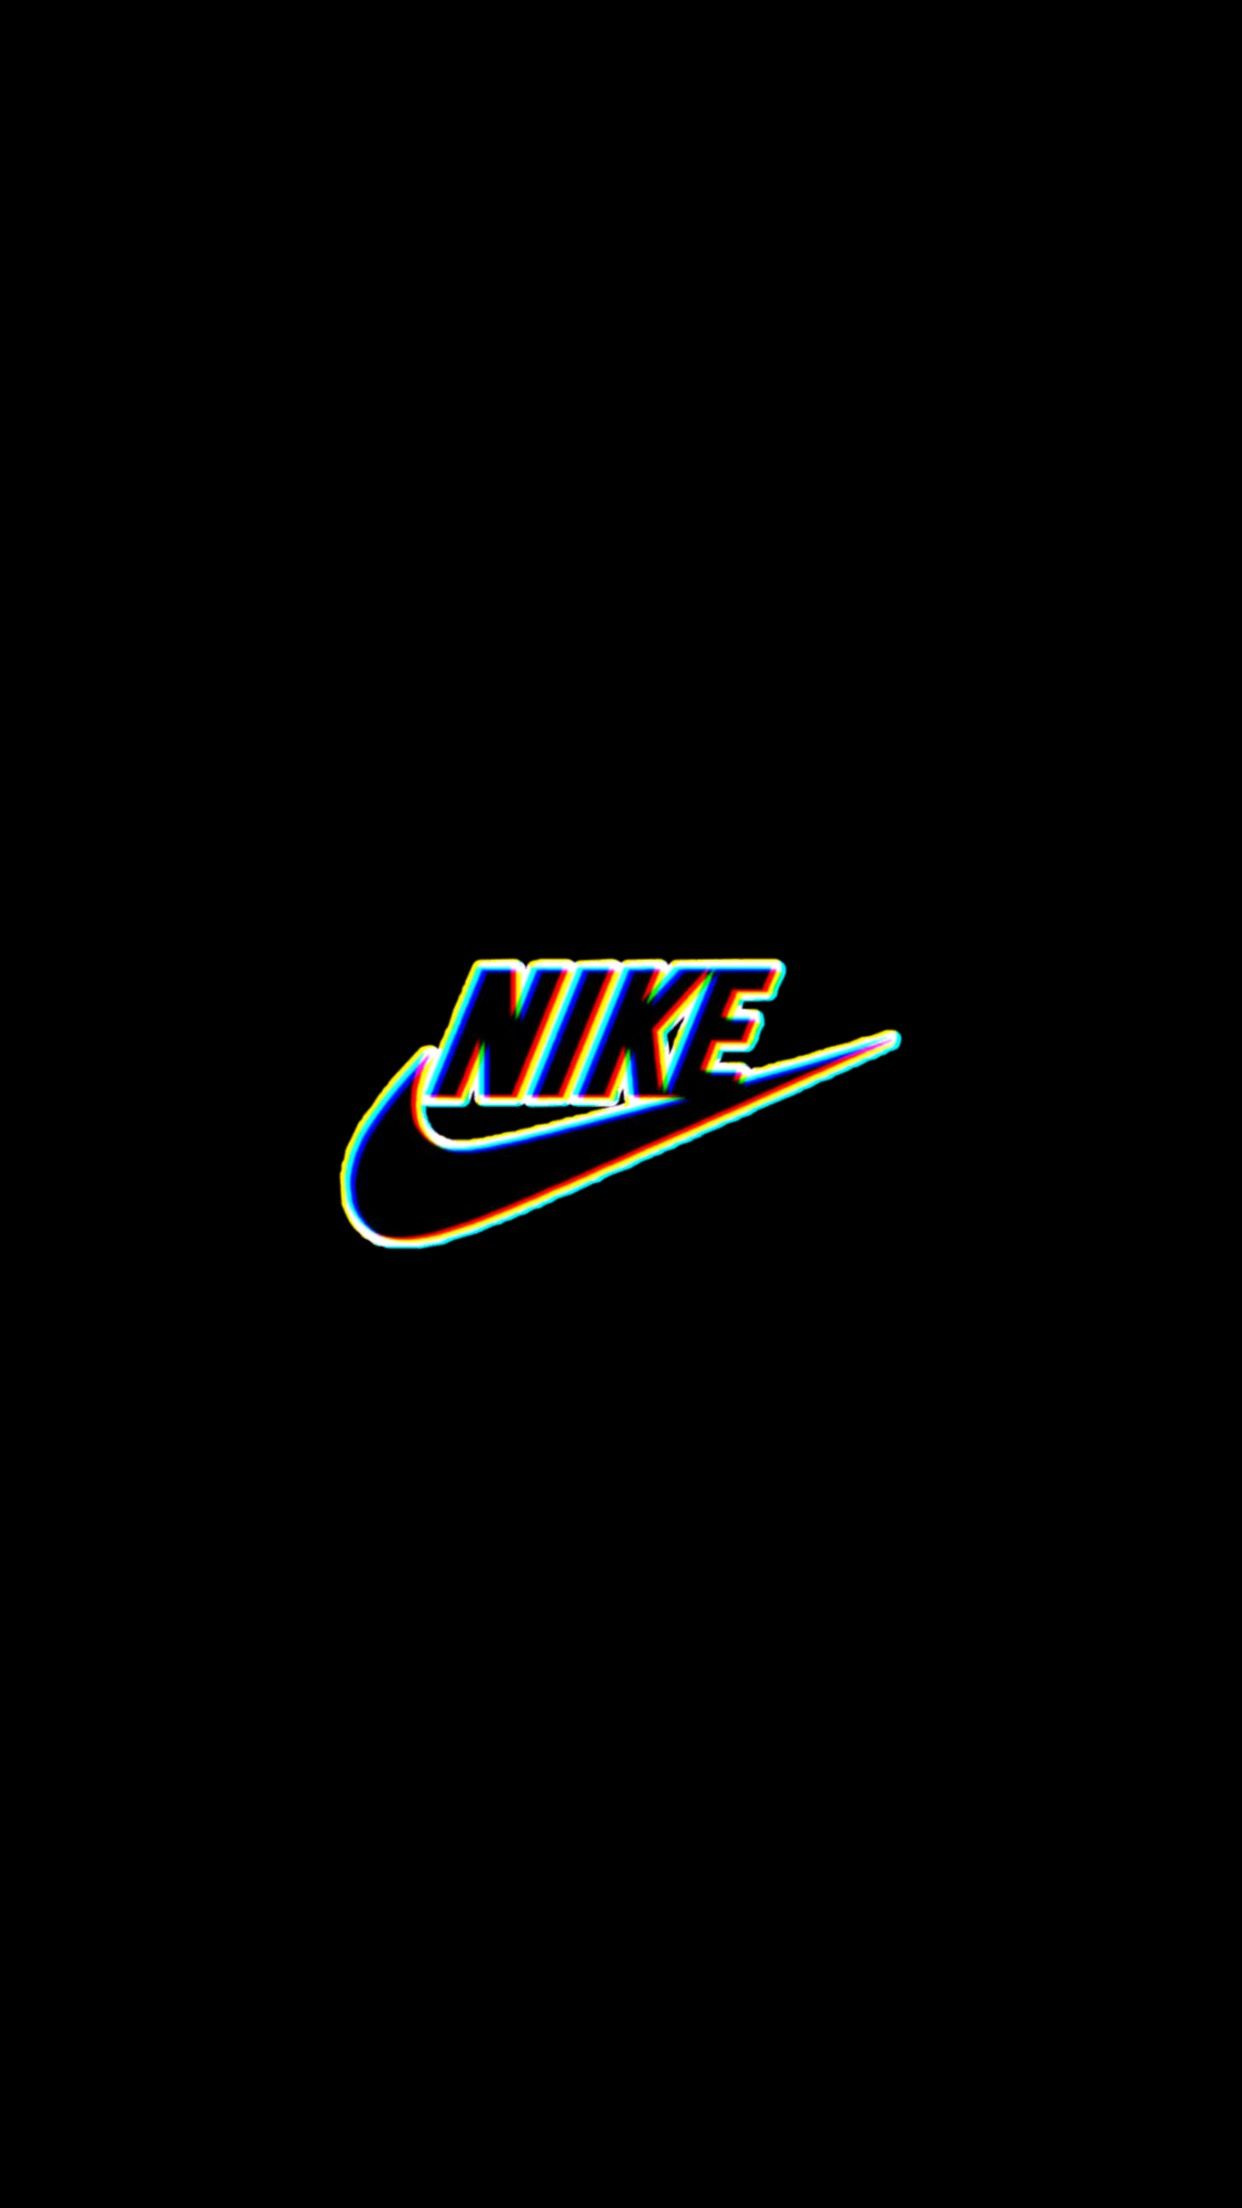 Nike Background Aesthetic Wallpaper Aesthetic Background Glitch